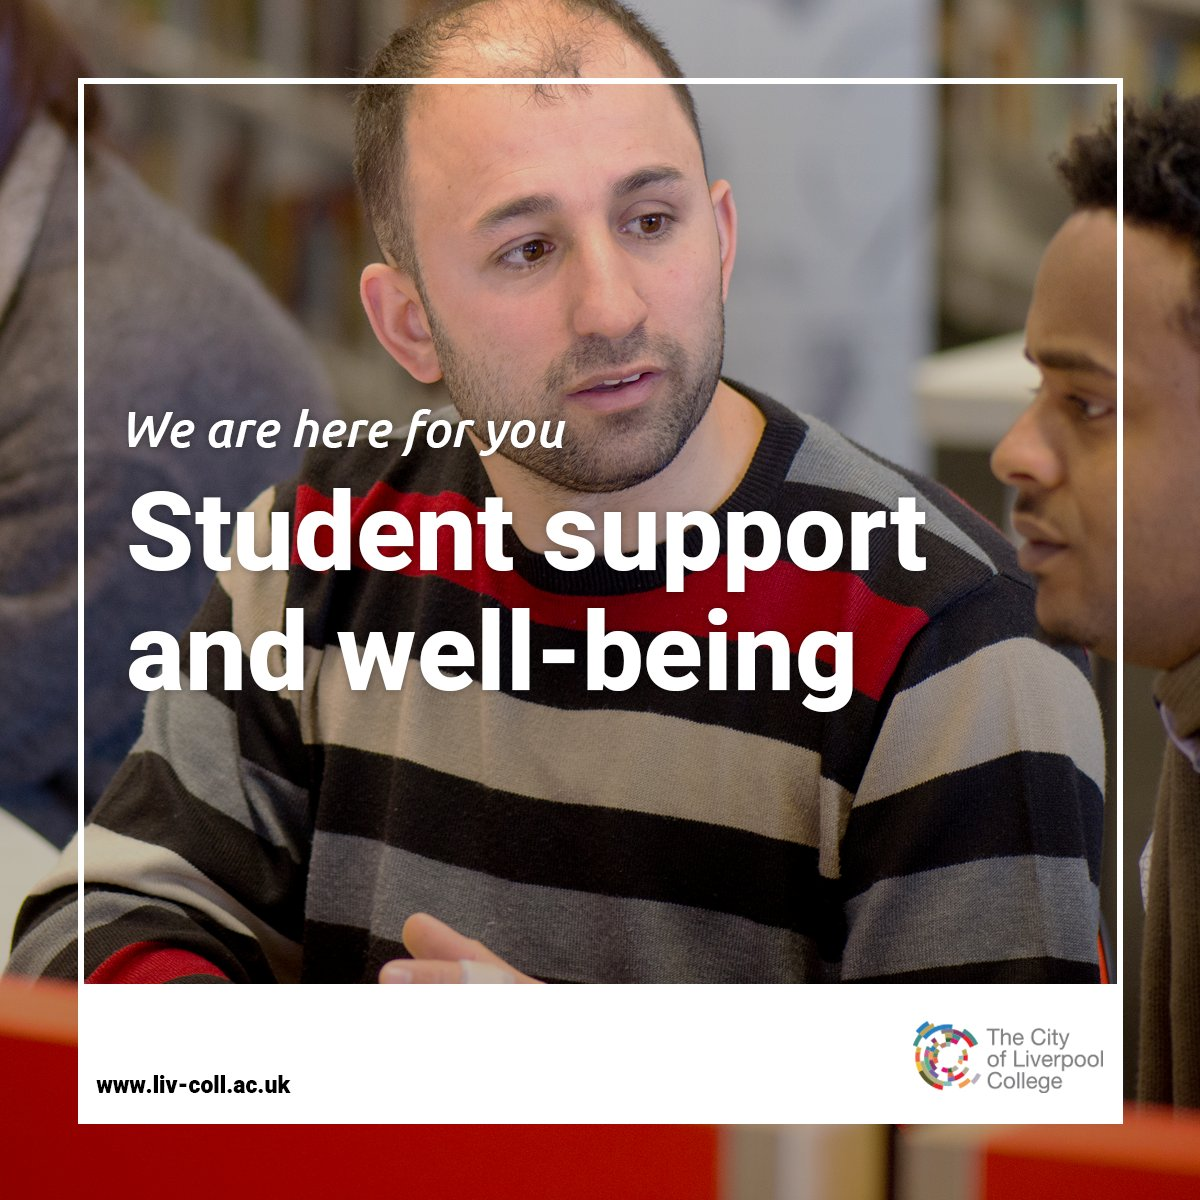 We want you to know that access to our support services is still available, online or over the phone, whilst the college is closed. We are here for you. ❤️  Find out more: https://t.co/w9uxtV6oBN  #ForTheFuture https://t.co/qanHPOzrnS